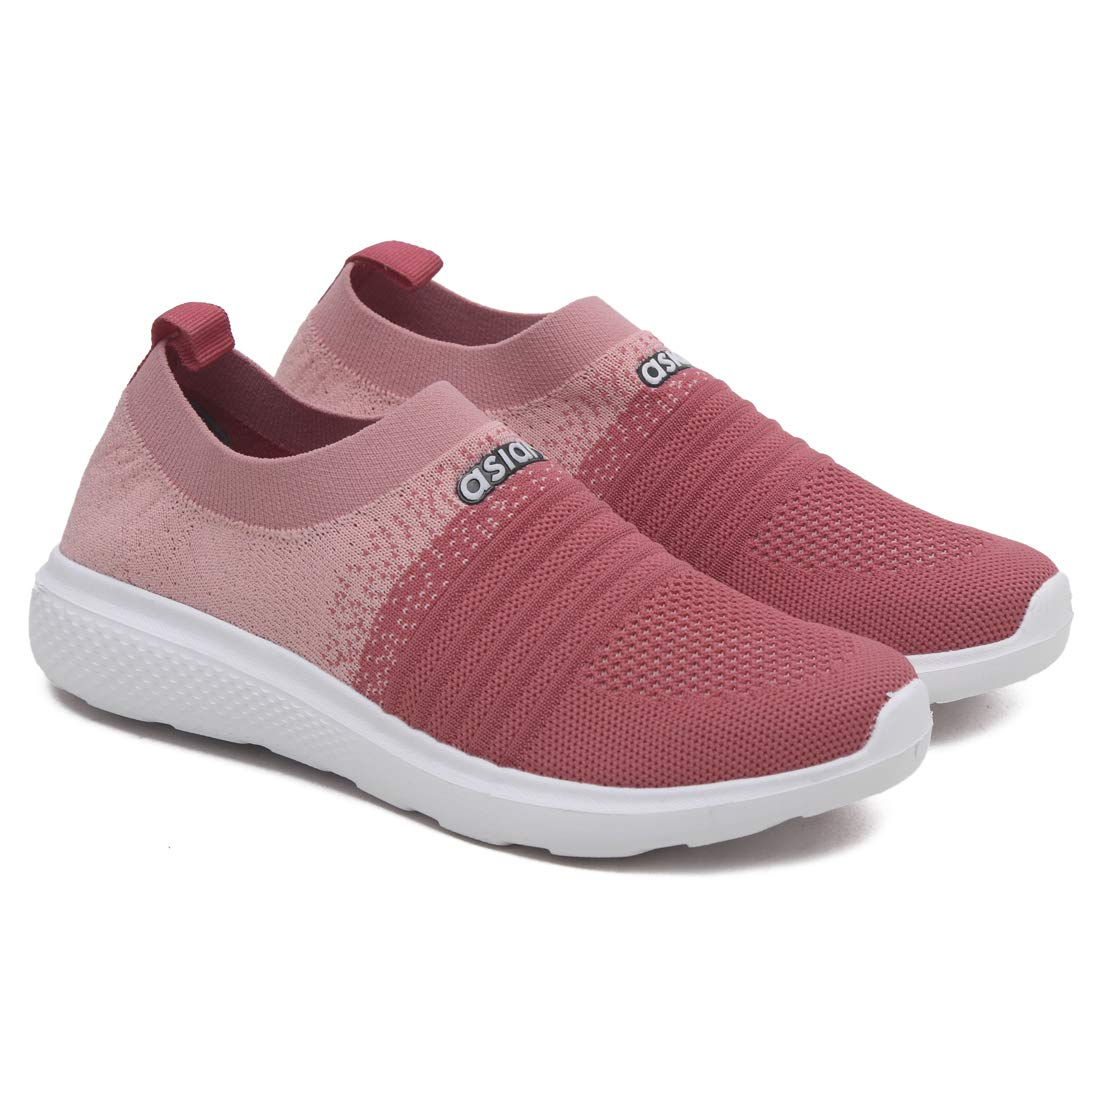 ASIAN Women's Elasto-02 Peach Pink Knitted Socks Sneakers,Ultra-Lightweight, Breathable, Walking, Running Running Shoes Fabric Sports Shoes UK-6 (B081JKJF3H) Amazon Price History, Amazon Price Tracker